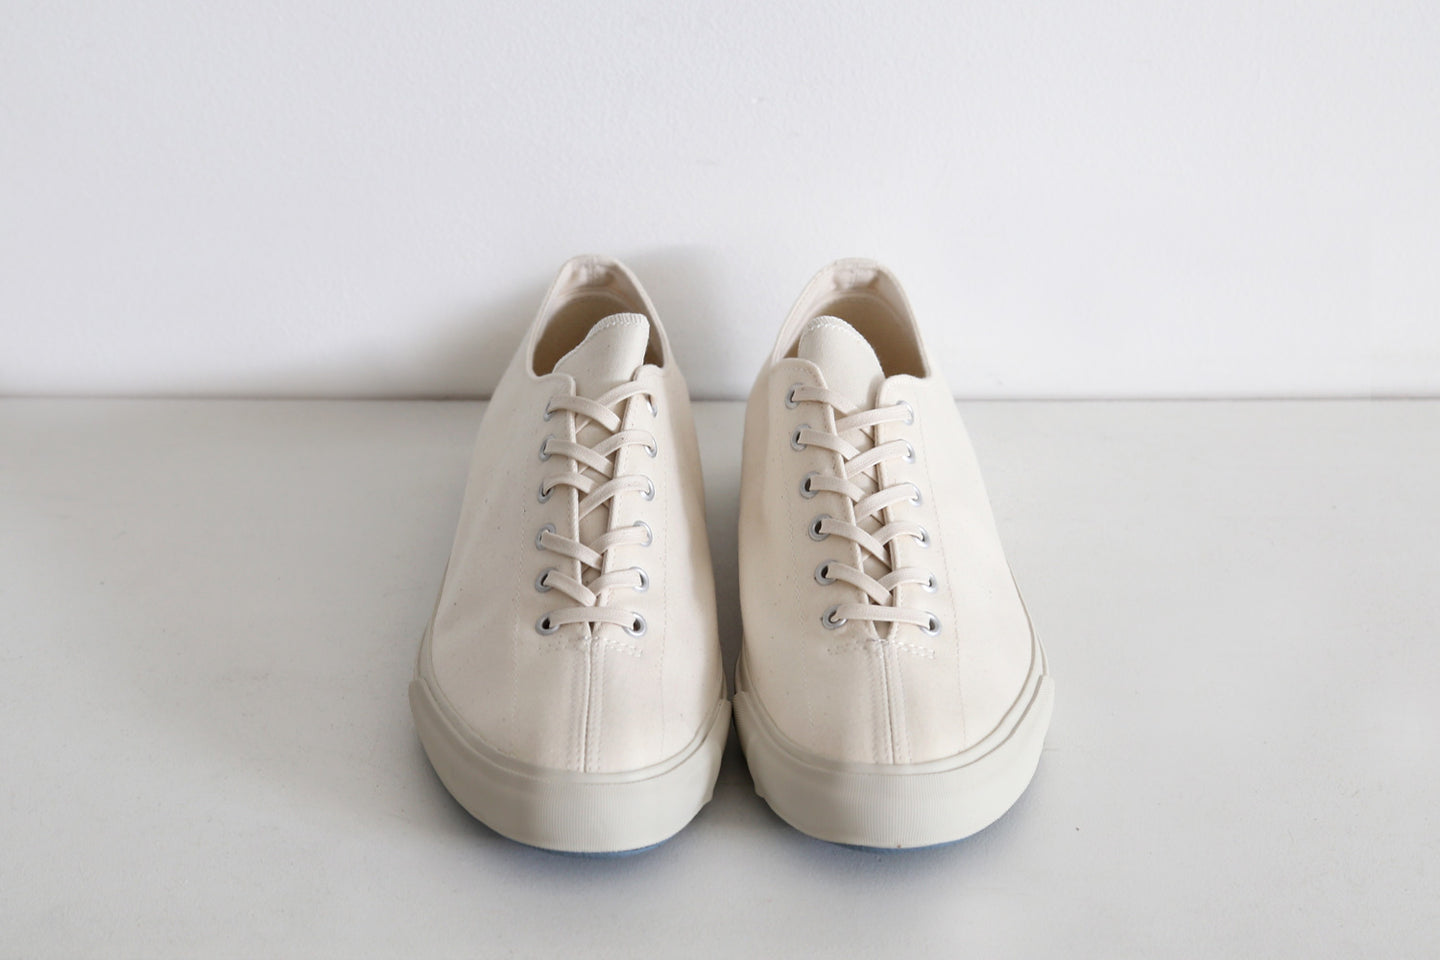 Moonstar x tokyobike Limited Edition Minima Sneaker Natural